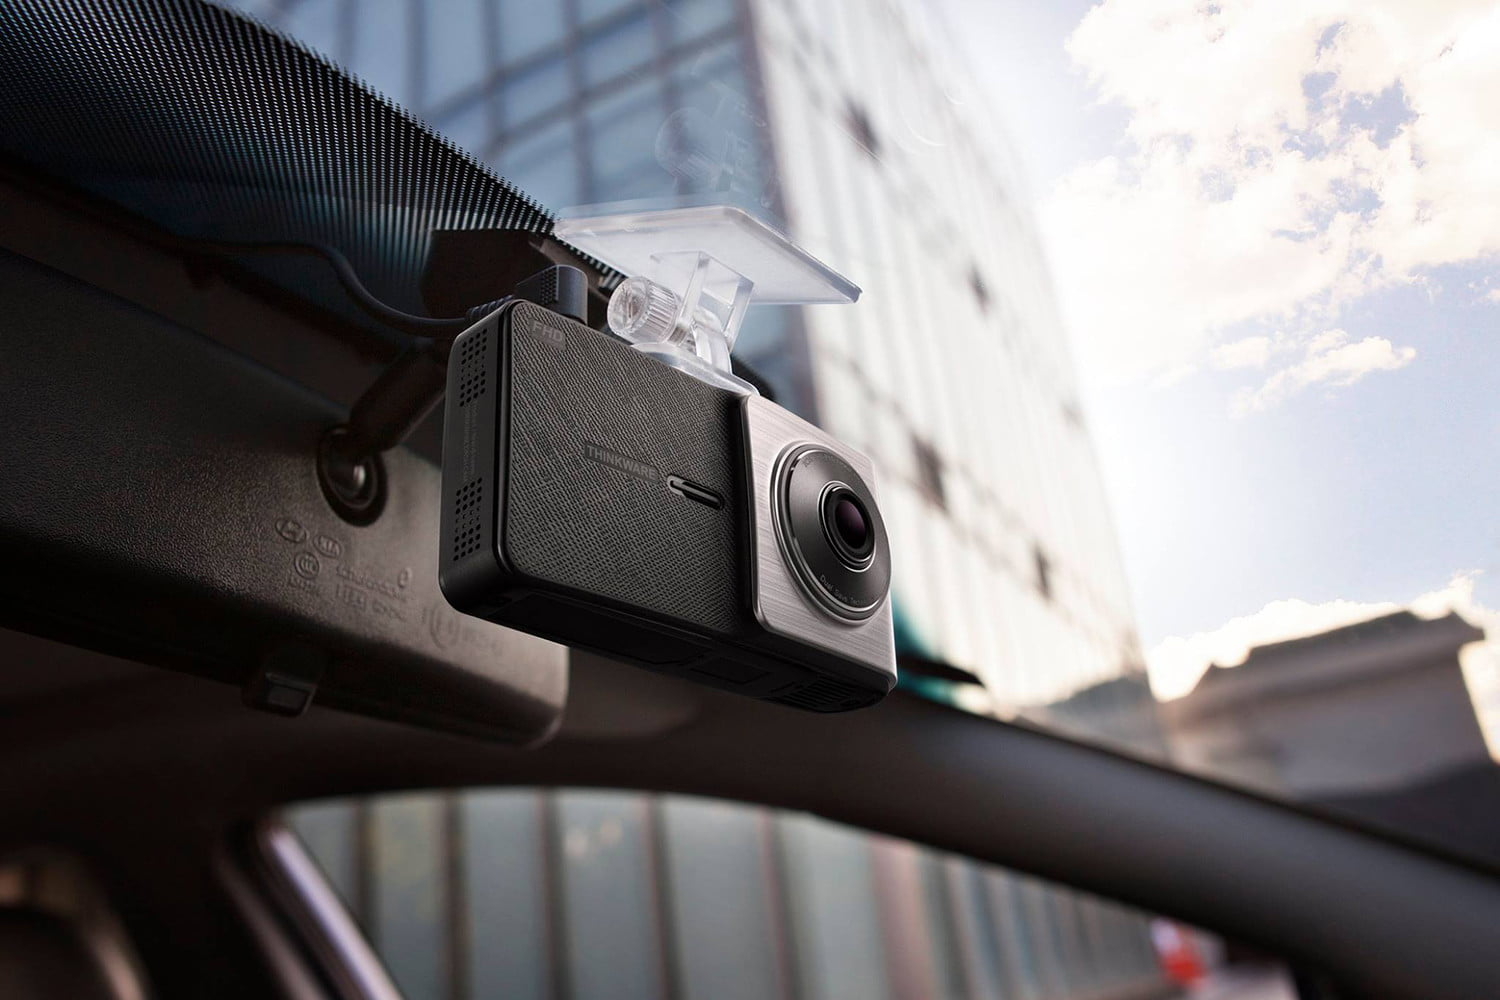 Best Dual Camera Dash Cam 2020 The Best Dash Cams for 2019 | Digital Trends